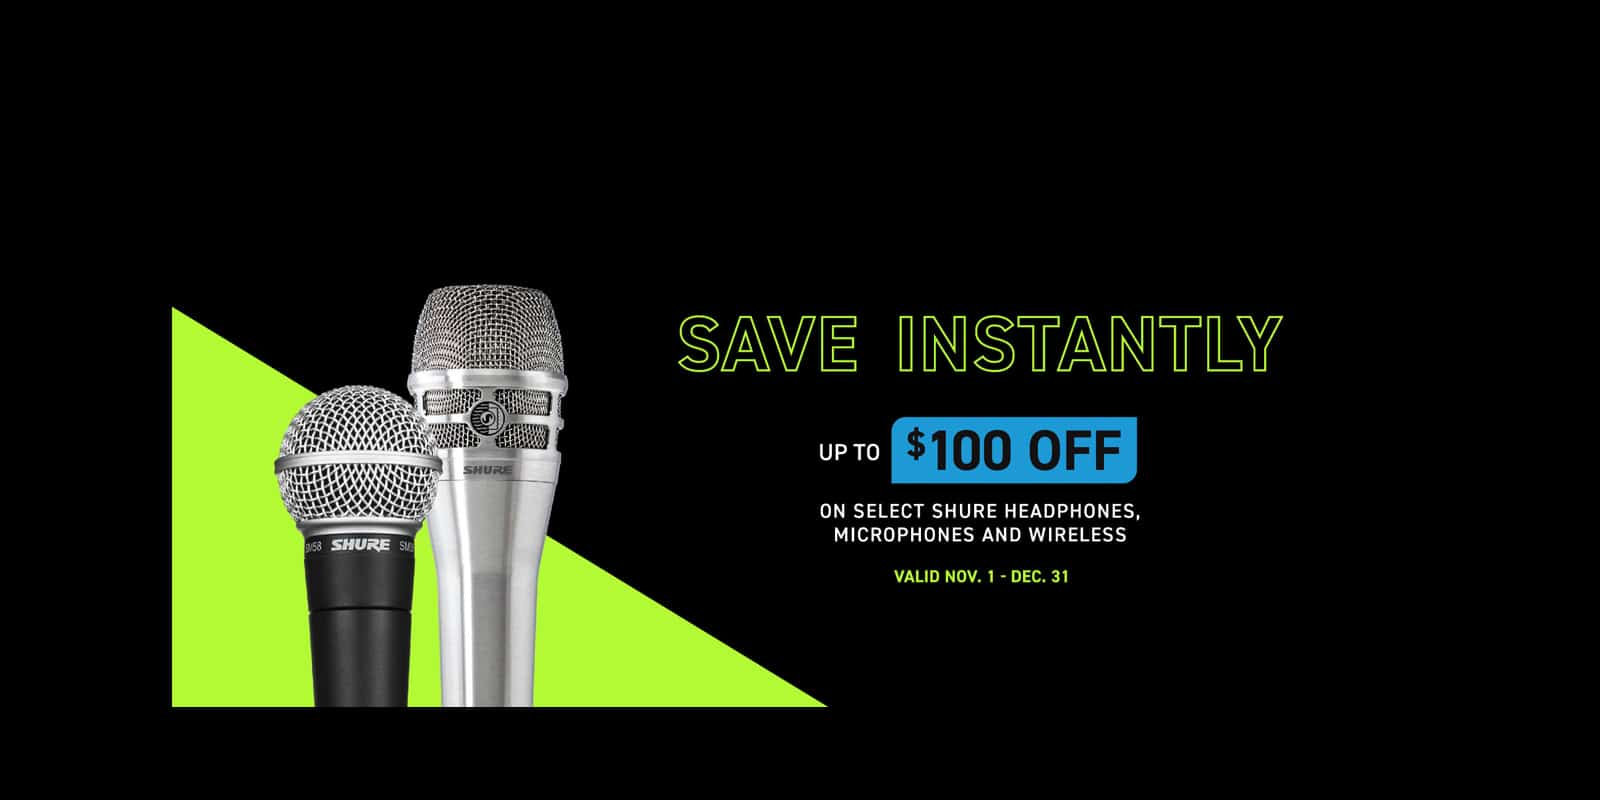 Shure holiday promotions 2020